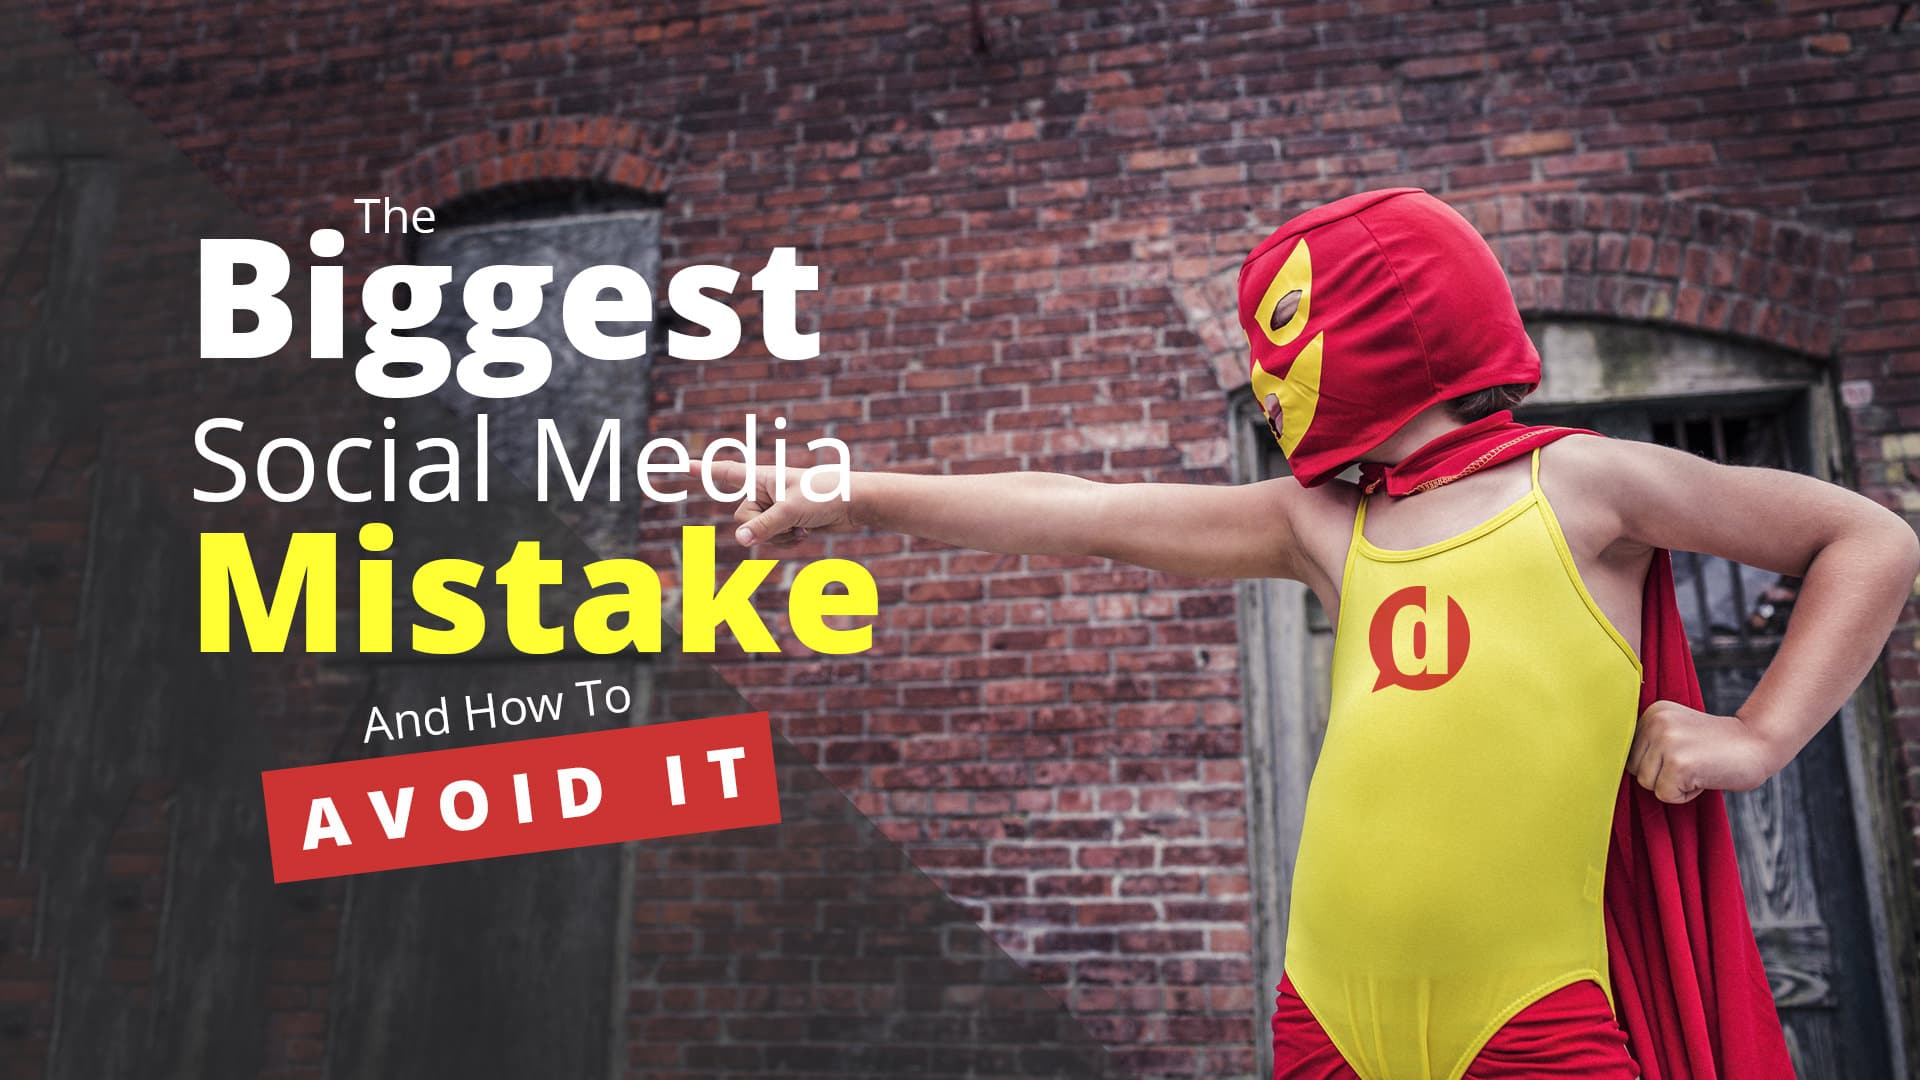 The Biggest Social Media Mistake (and How to Avoid It)